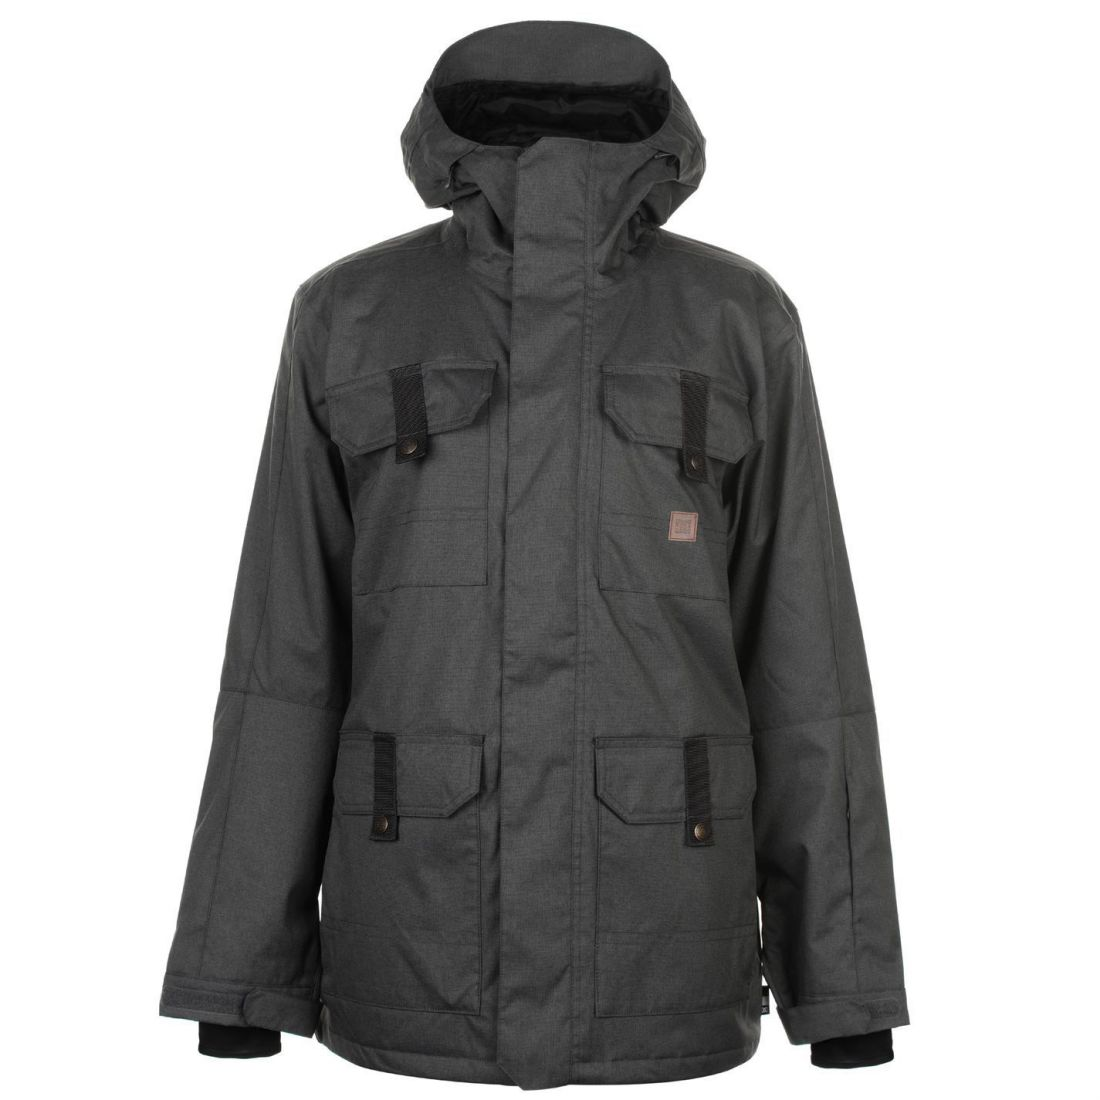 83442ee21fa Image is loading DC-Mens-Servo-Jacket-Ski-Coat-Top